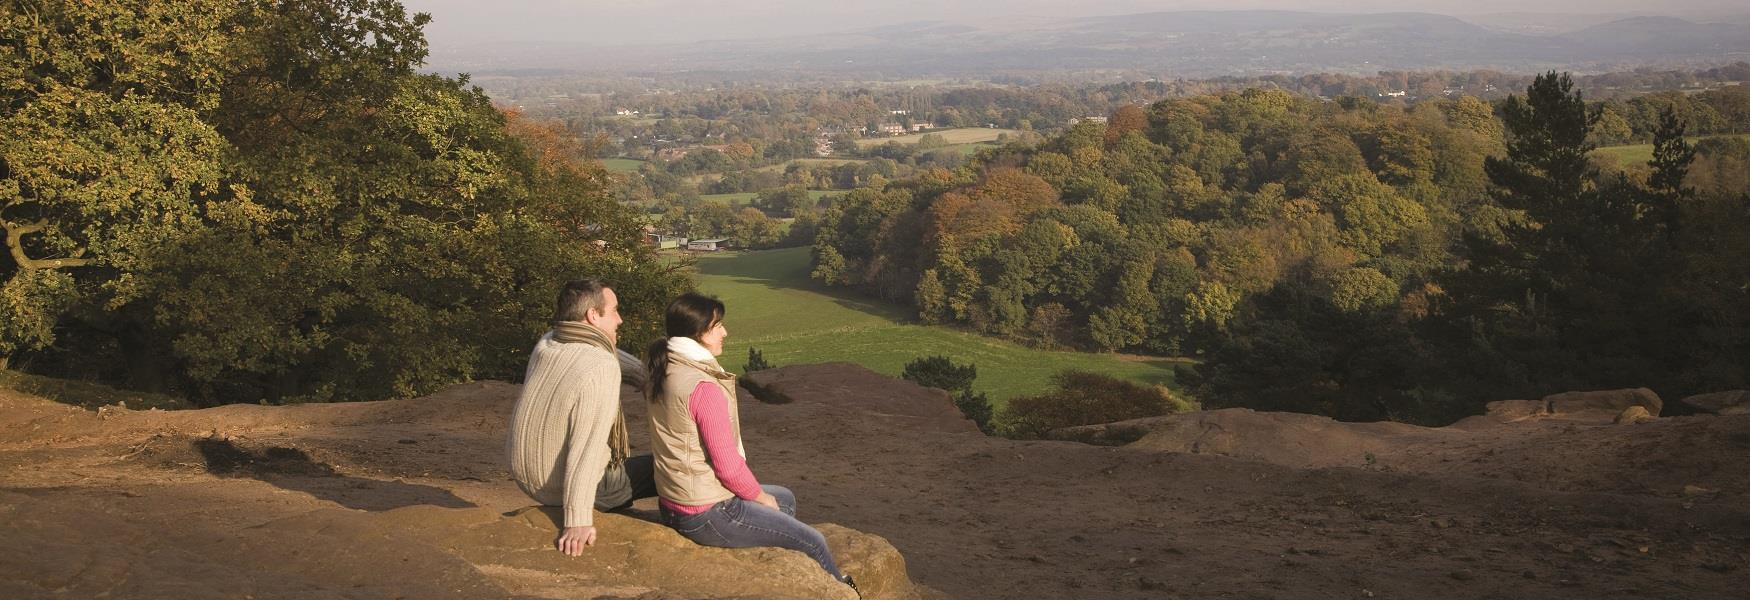 Discover Cheshire's Peak District